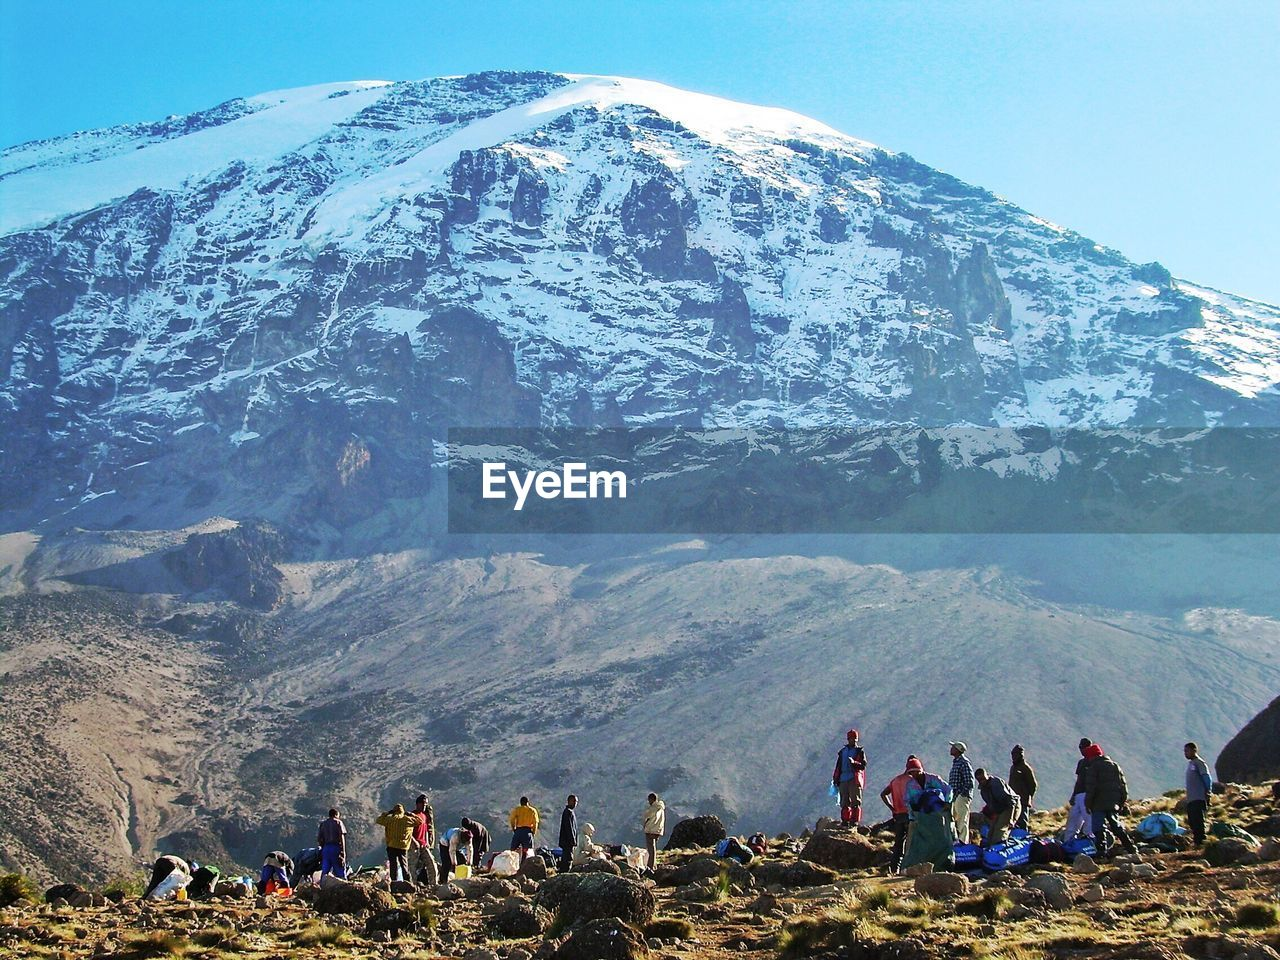 mountain, leisure activity, group of people, crowd, real people, large group of people, mountain range, nature, scenics - nature, beauty in nature, women, lifestyles, hiking, men, sky, activity, landscape, day, holiday, outdoors, mountain peak, snowcapped mountain